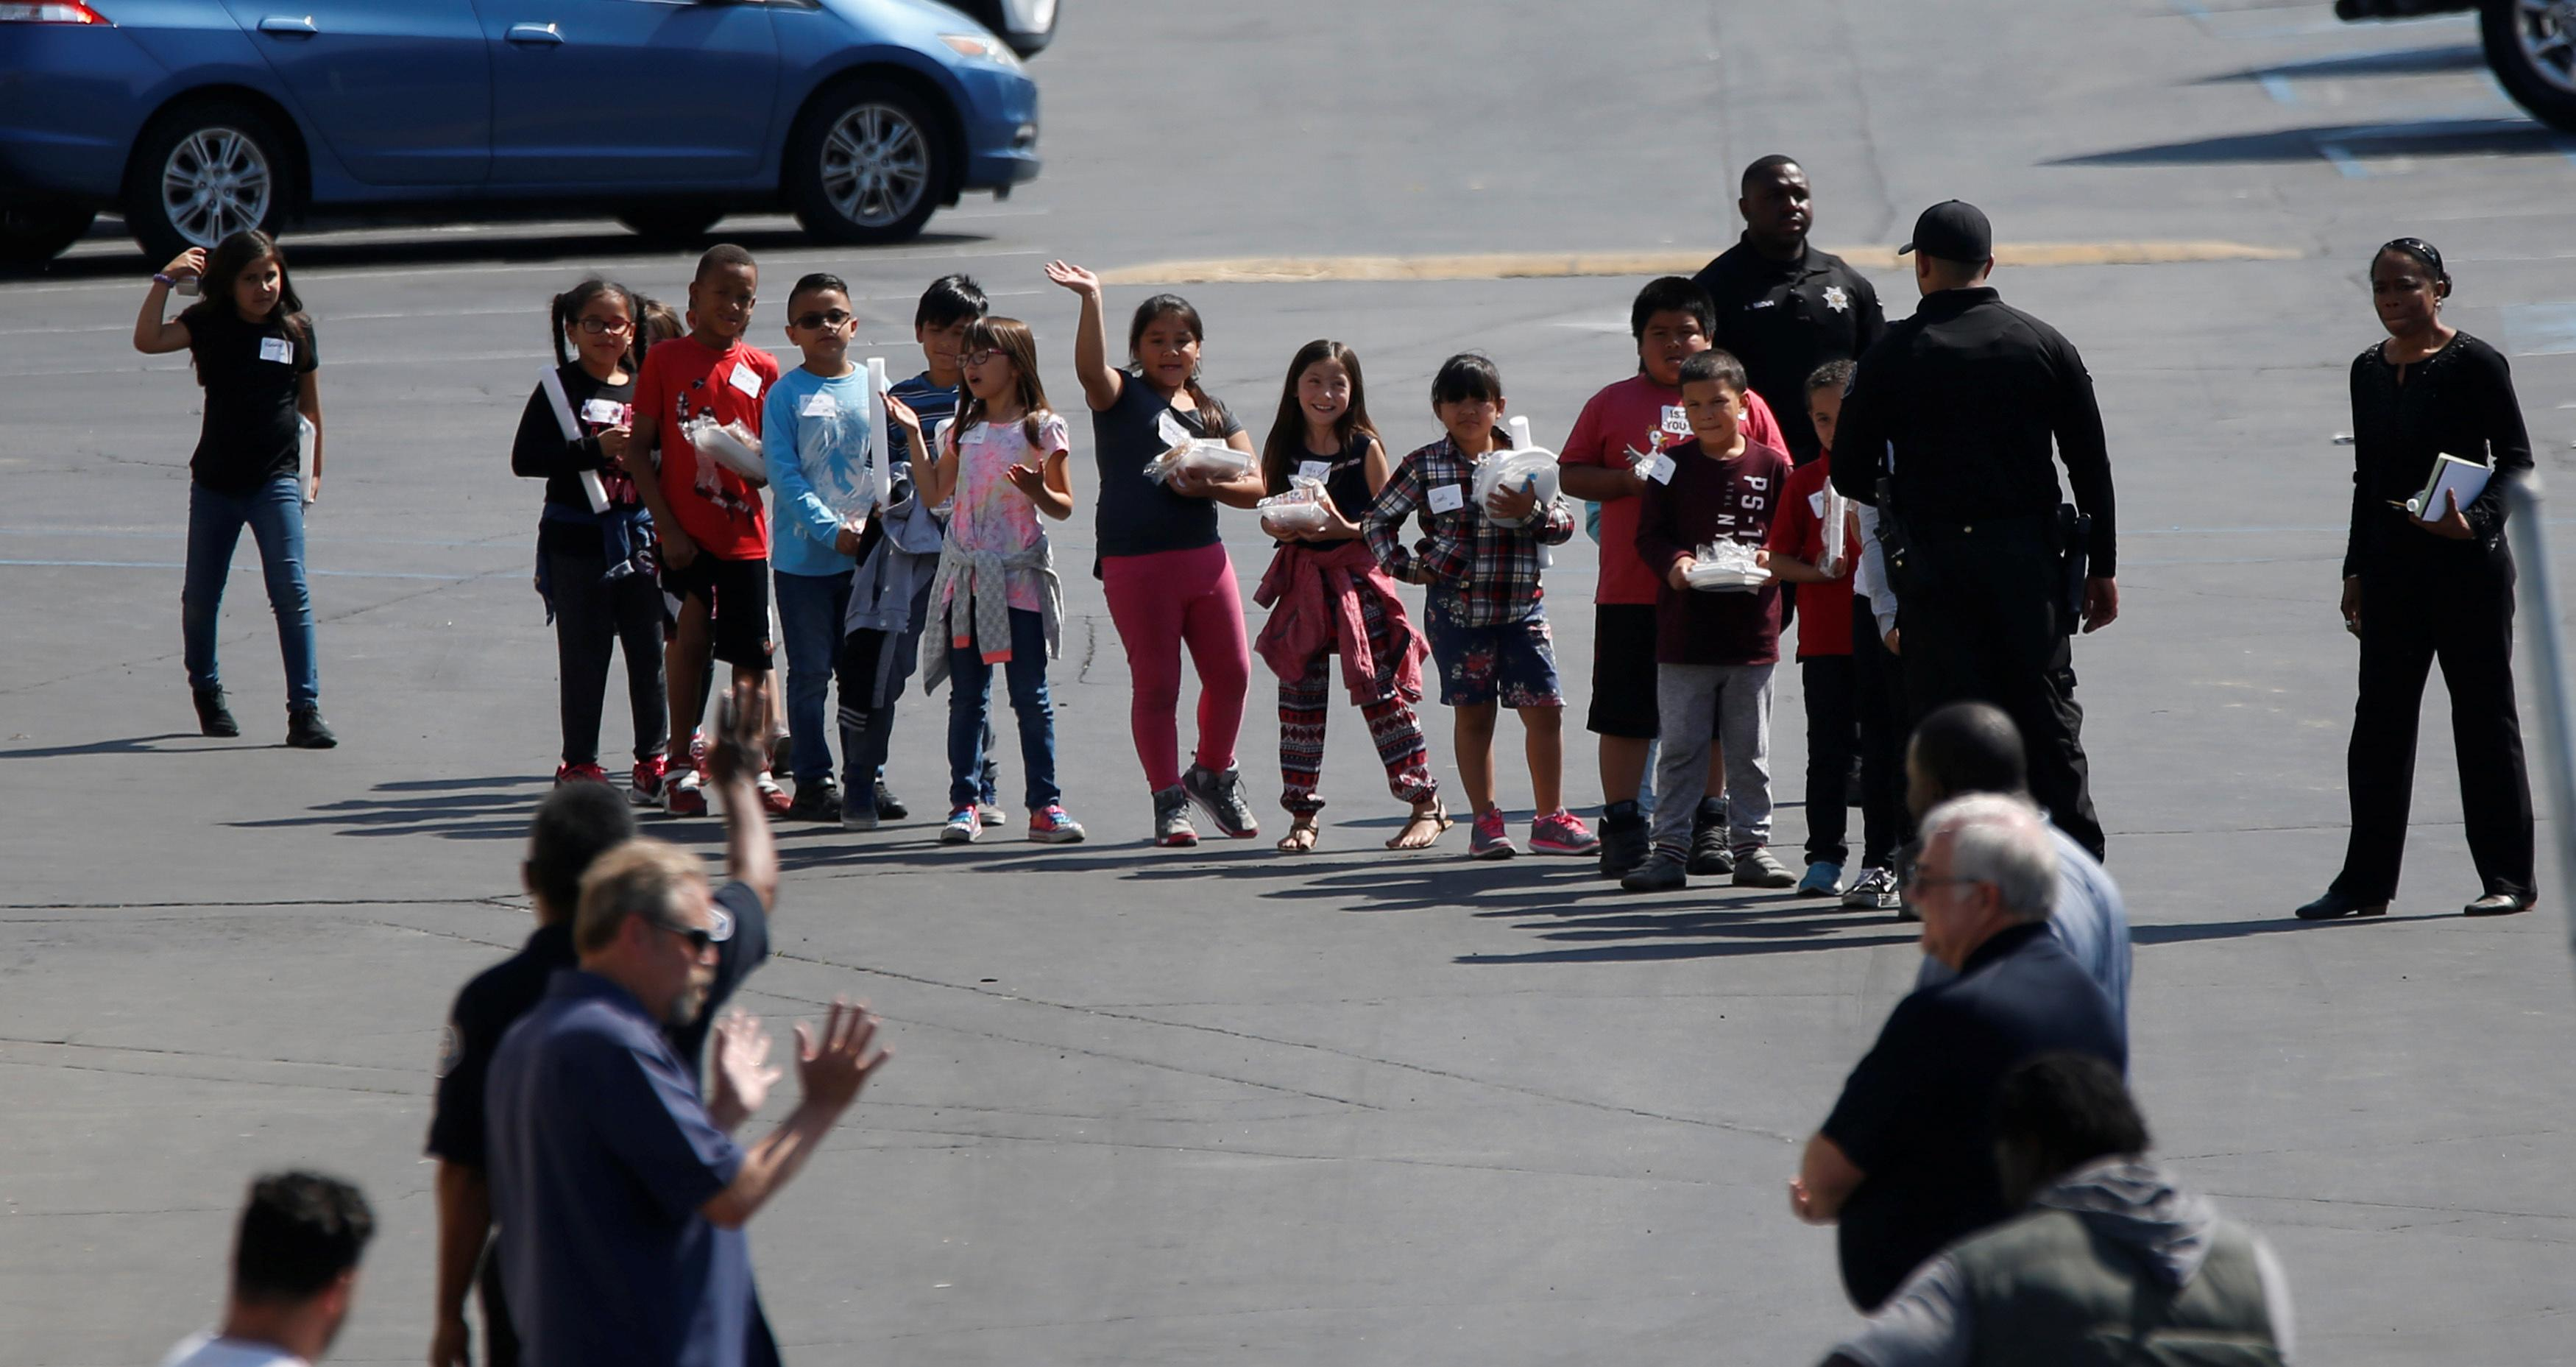 media effects on school shooting victims essay Researchers say congress has blocked funding for research on gun violence, including effects of mass media coverage.